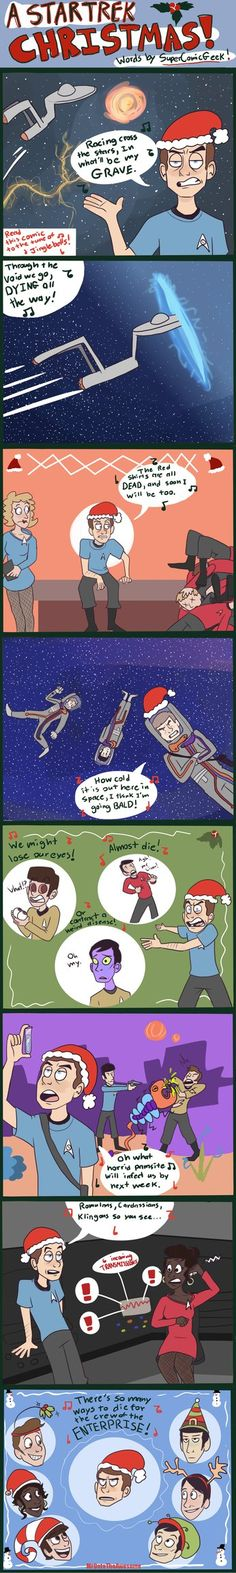 A Star Trek Christmas by MrDataTheAwesome.deviantart.com on @DeviantArt